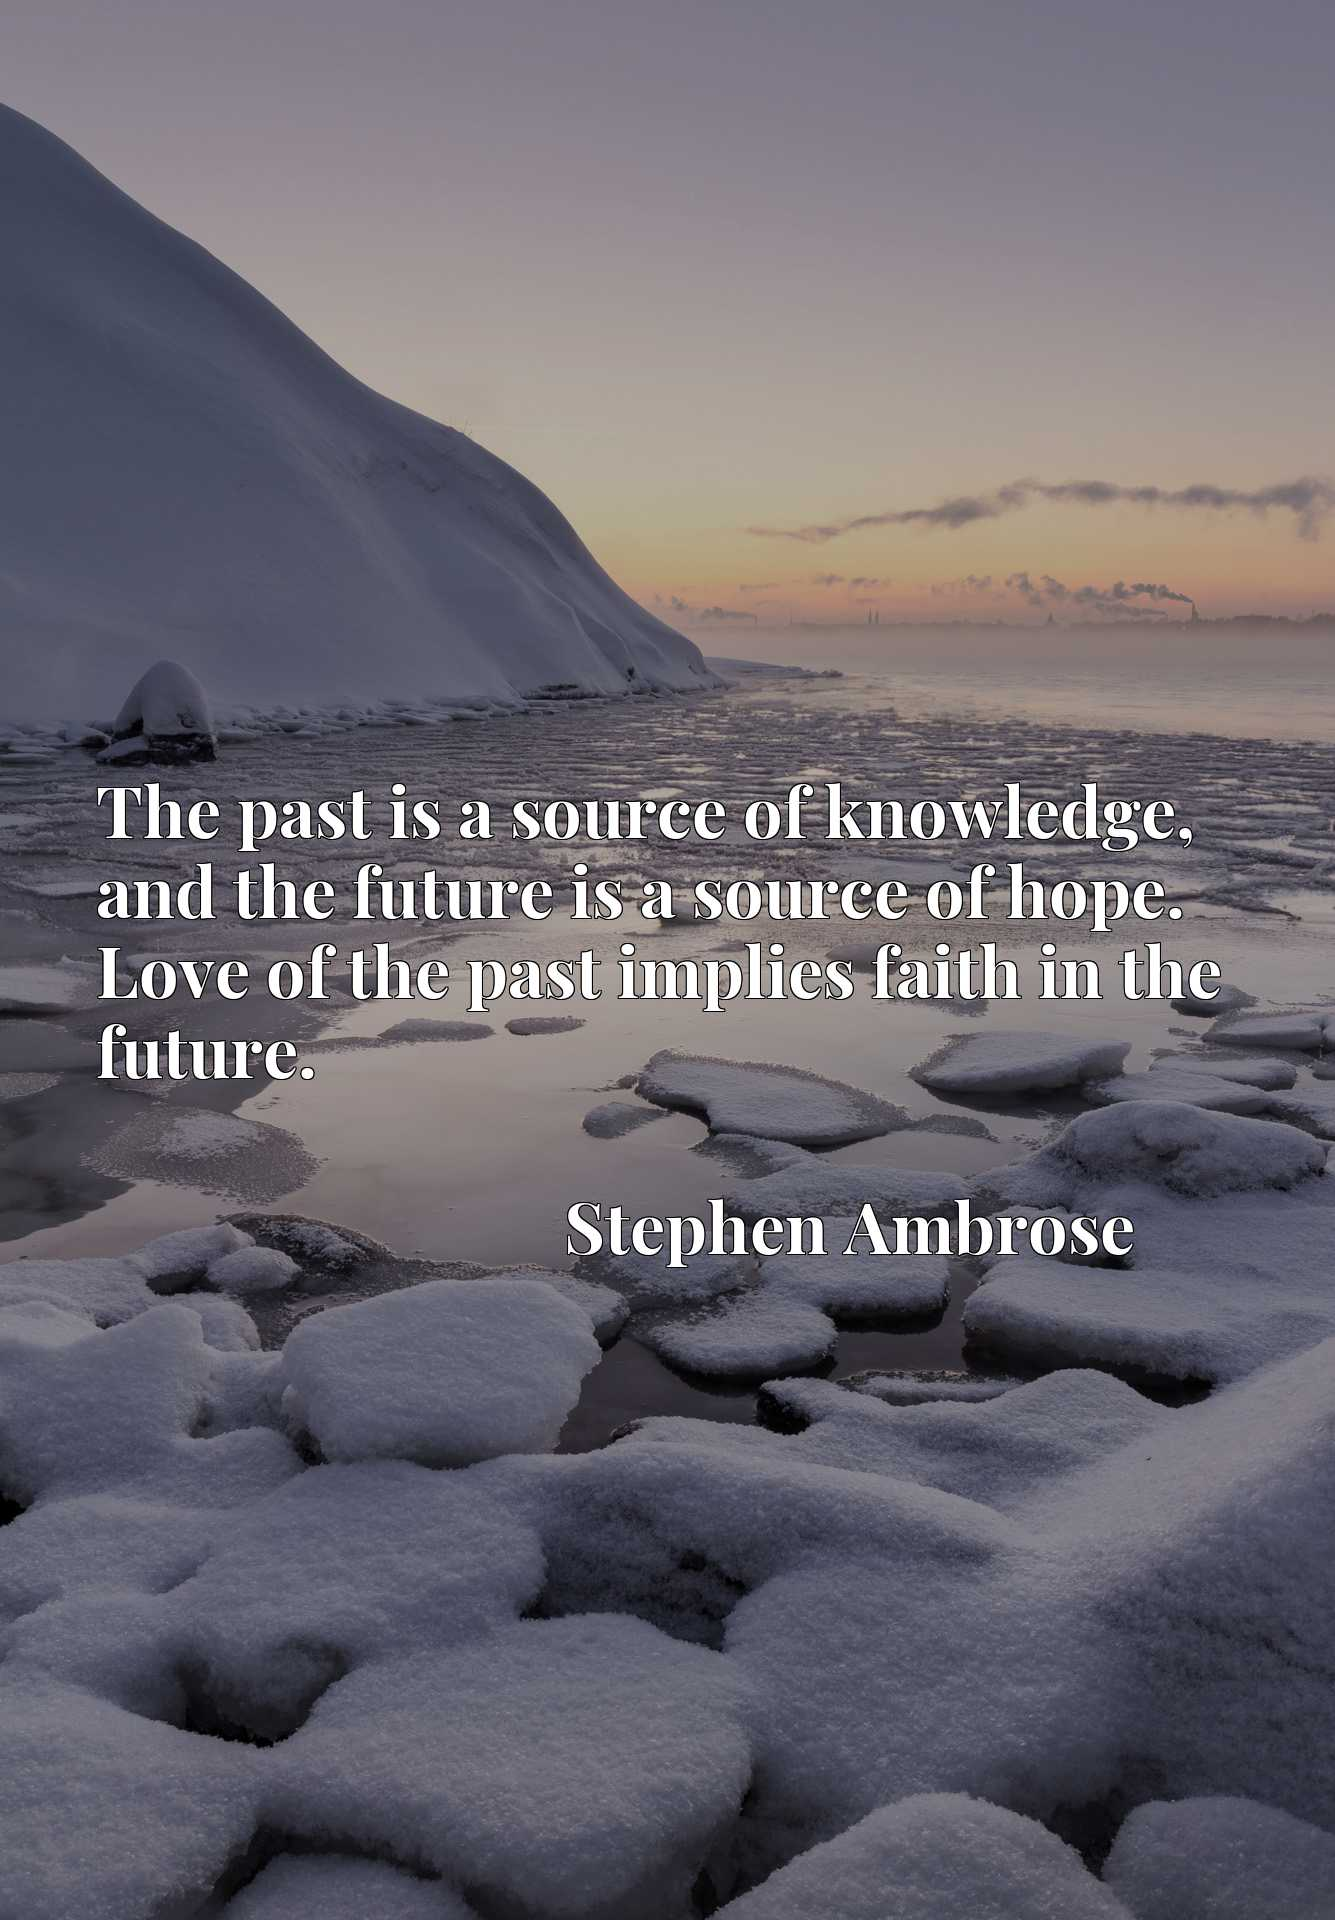 The past is a source of knowledge, and the future is a source of hope. Love of the past implies faith in the future.